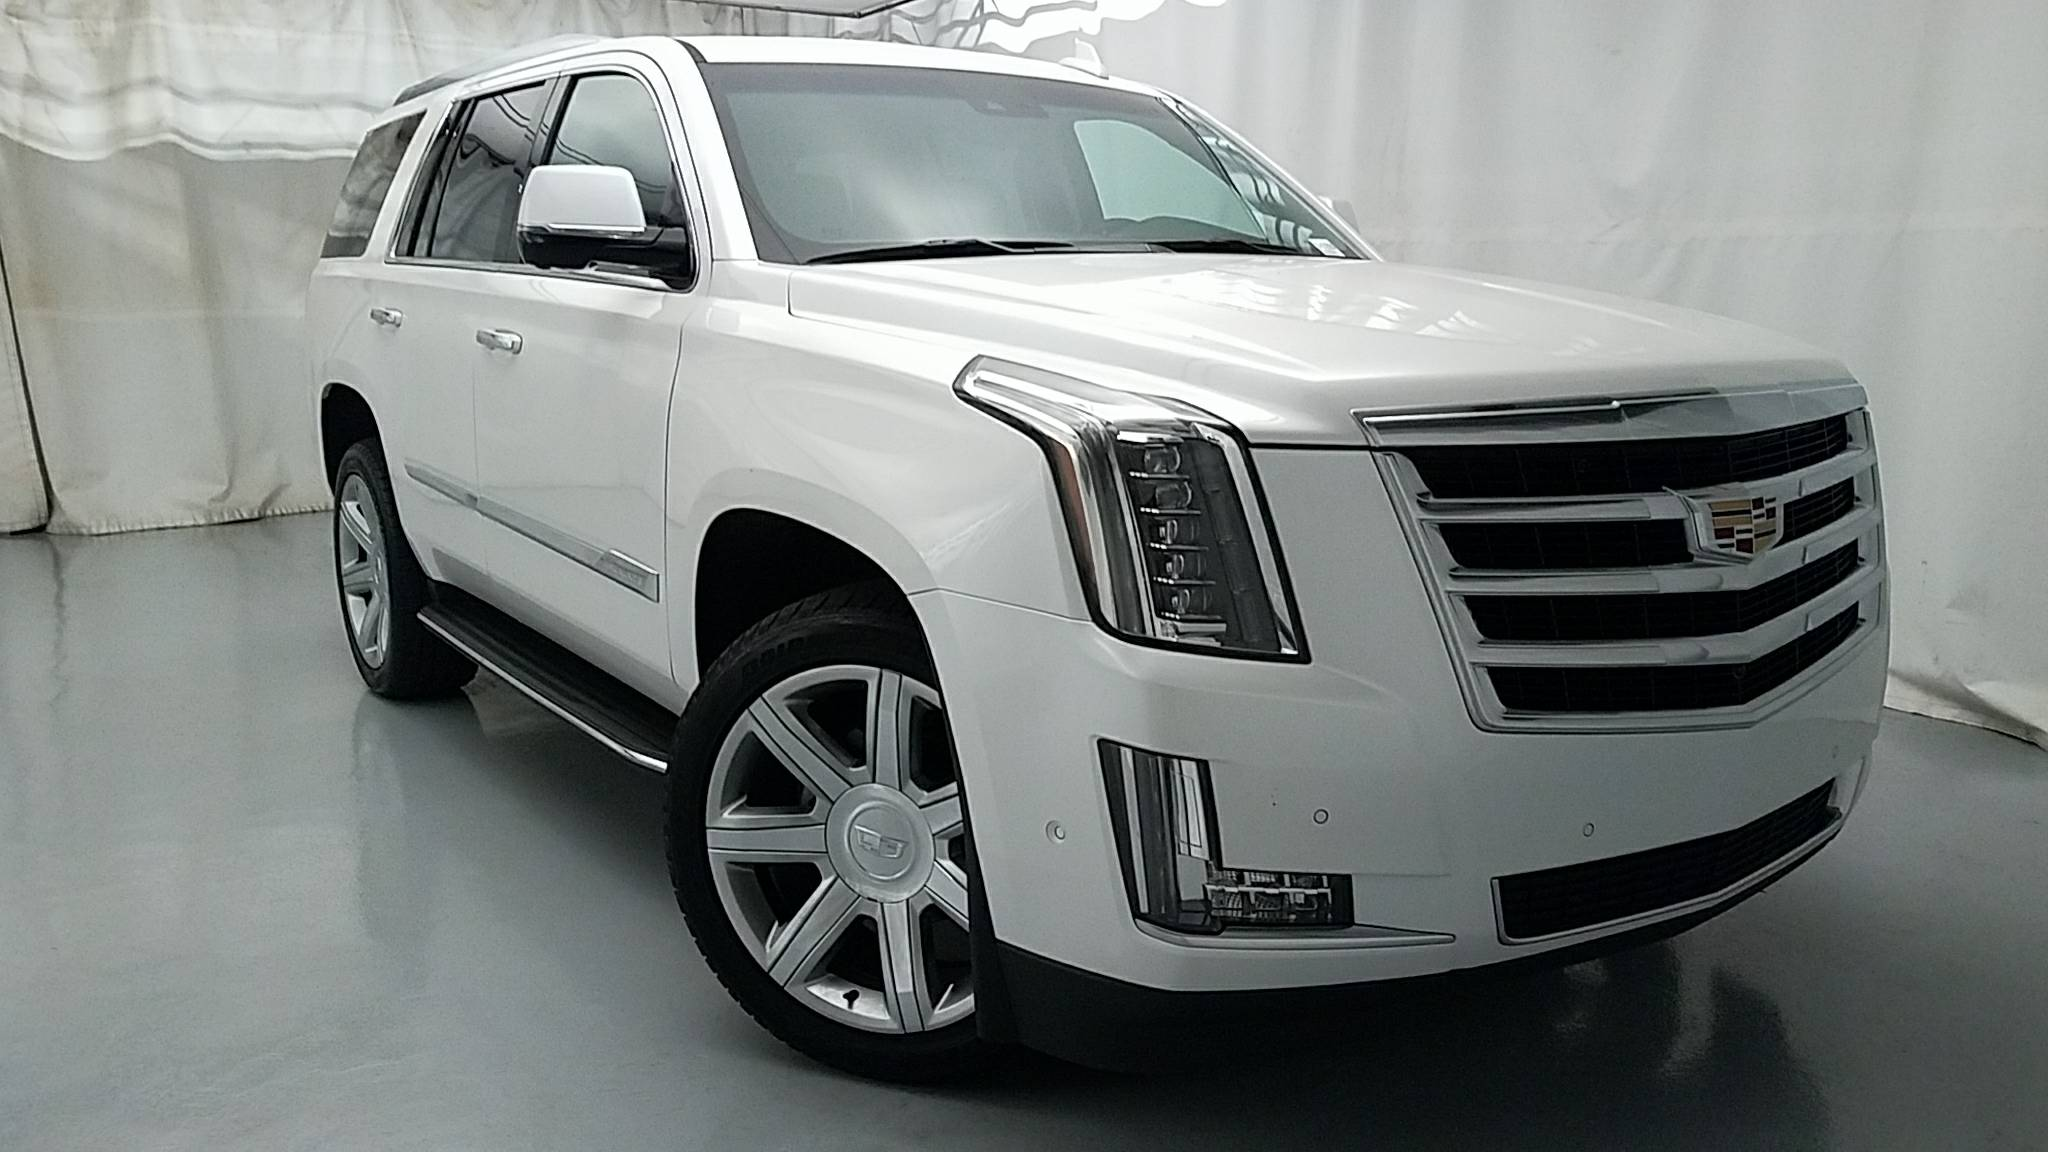 Used Cadillac Escalade Cadillac Vehicles for Sale in Hammond